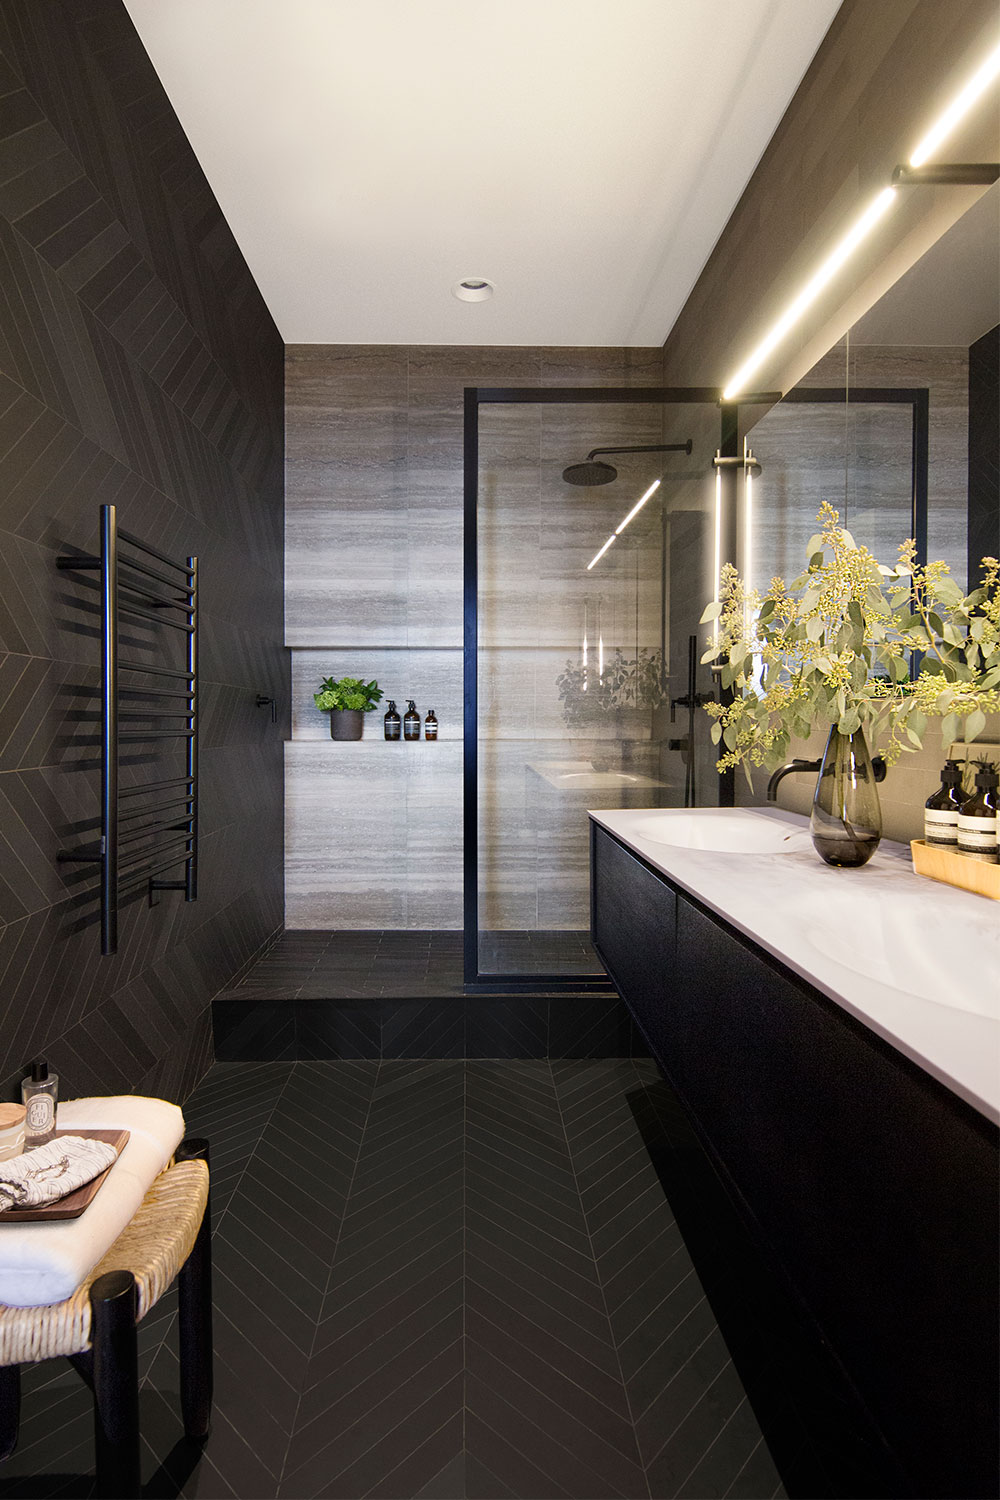 Master bathroom of the Loft renovation project in Chelsea, New York City designed by the architecture studio Danny Forster & Architecture